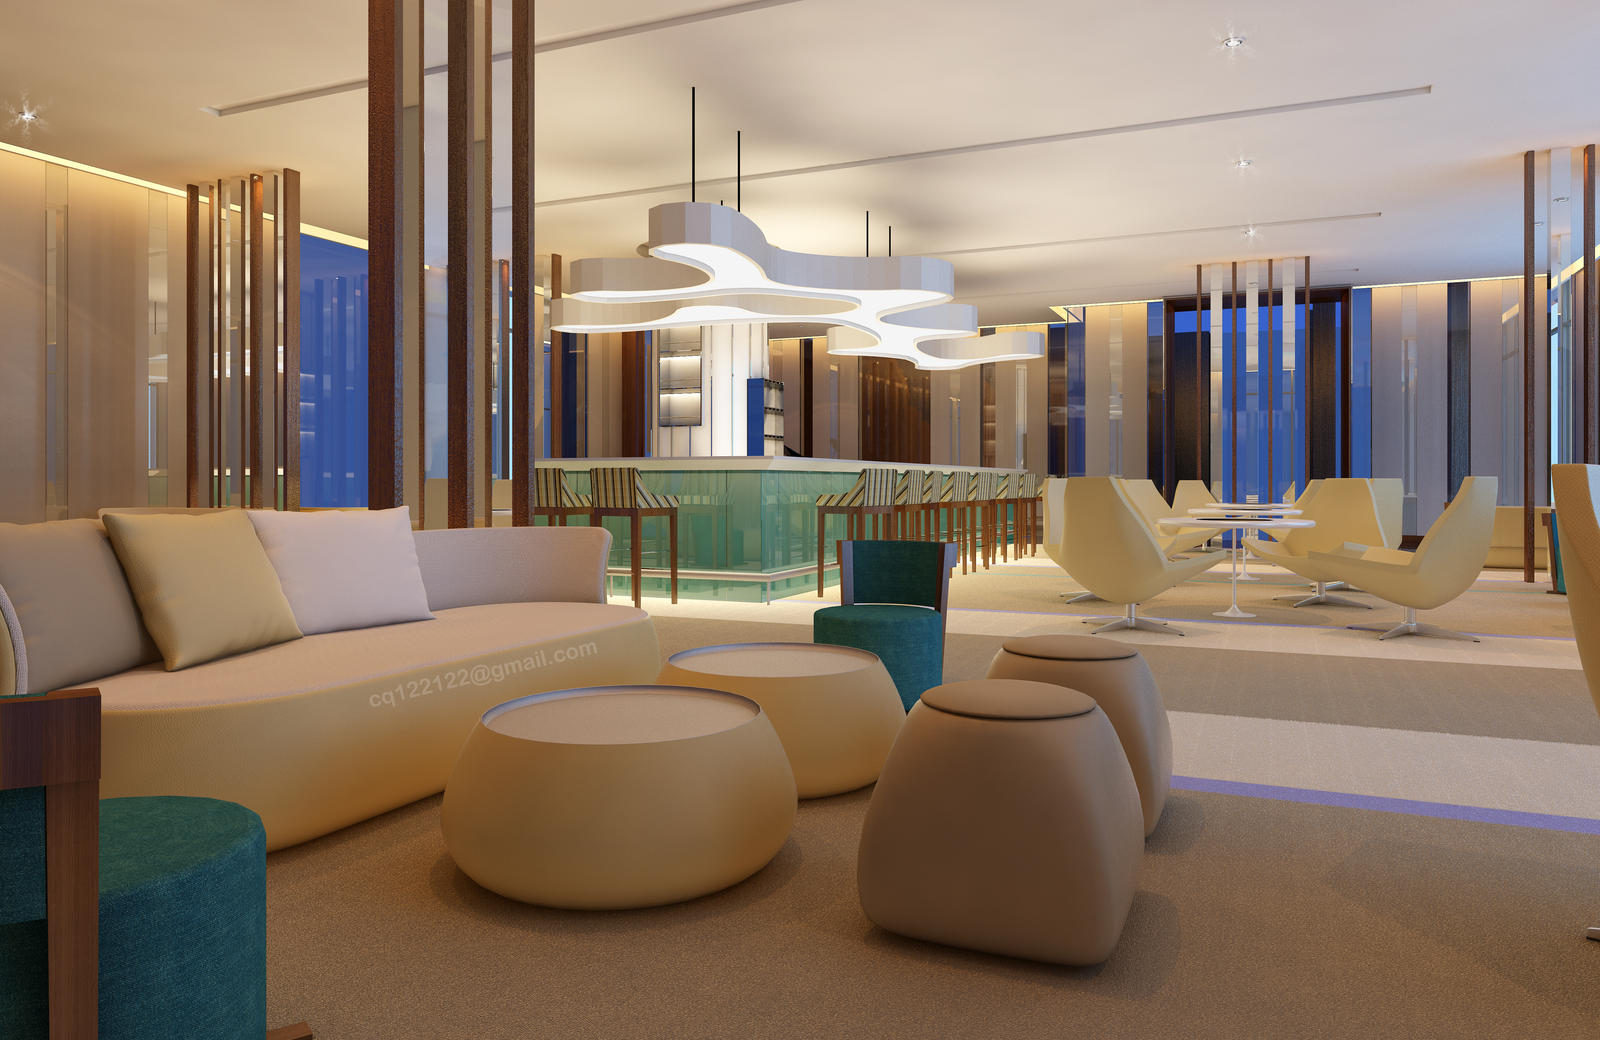 Hotel Lounge Bar Design By Douglasdao On Deviantart